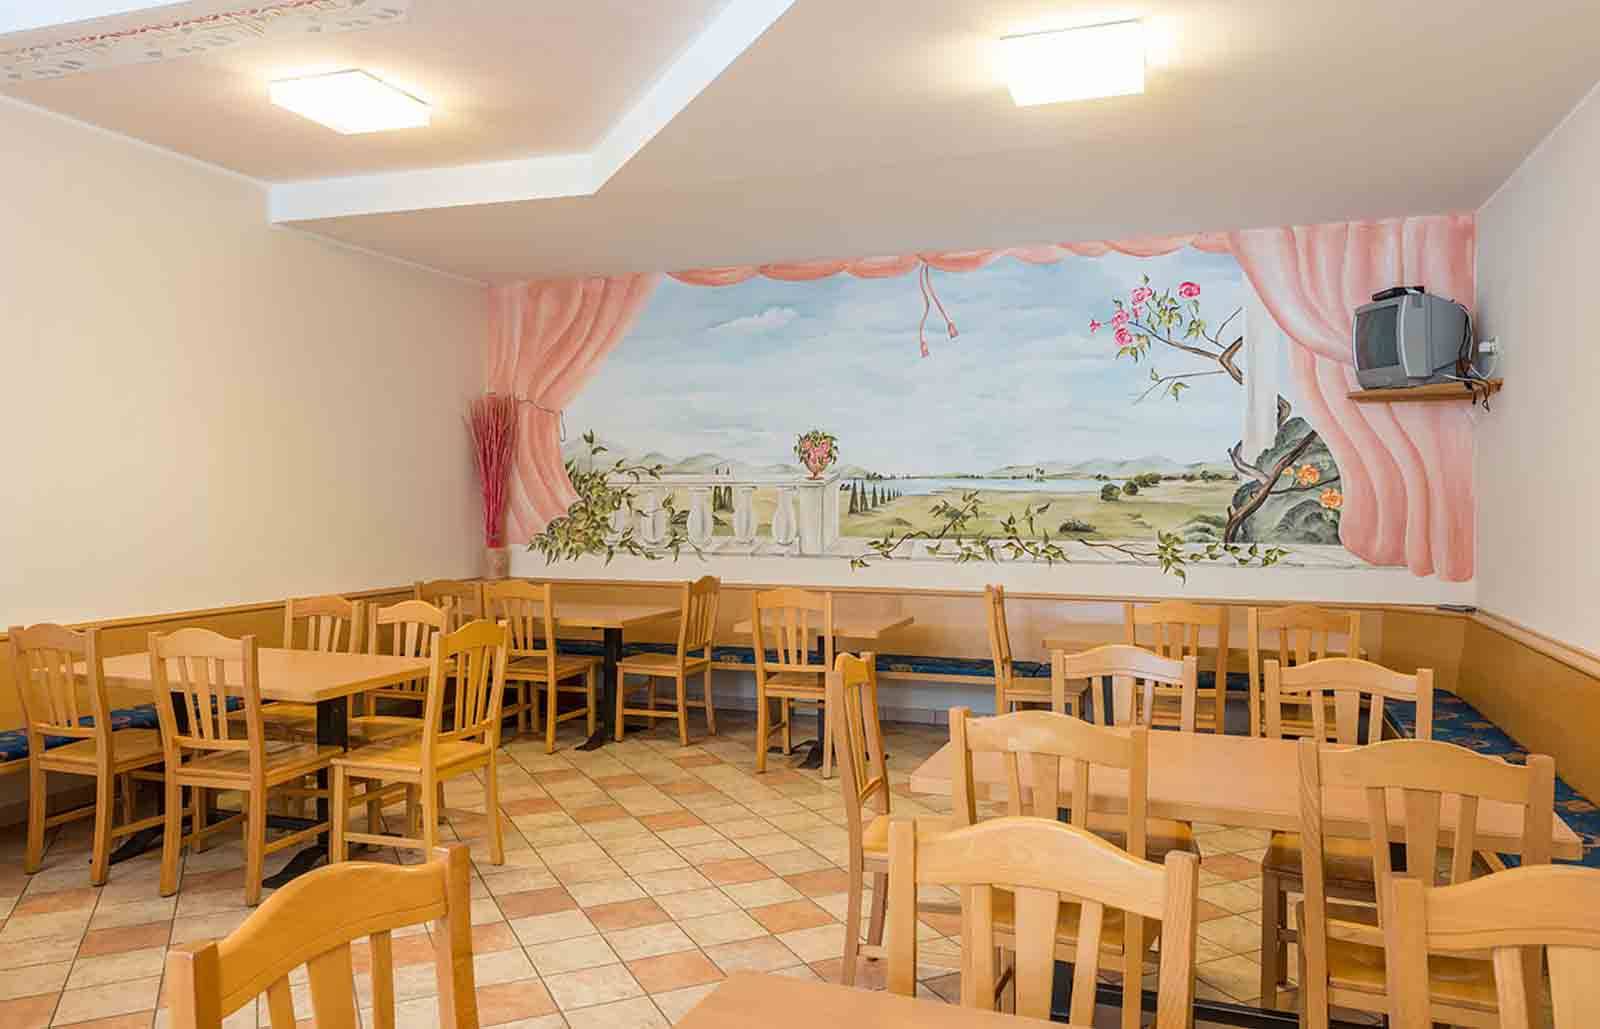 The dining room at Rinsbacherhof has wooden furnishing, on the wall there is a big painting of a landscape on the wall